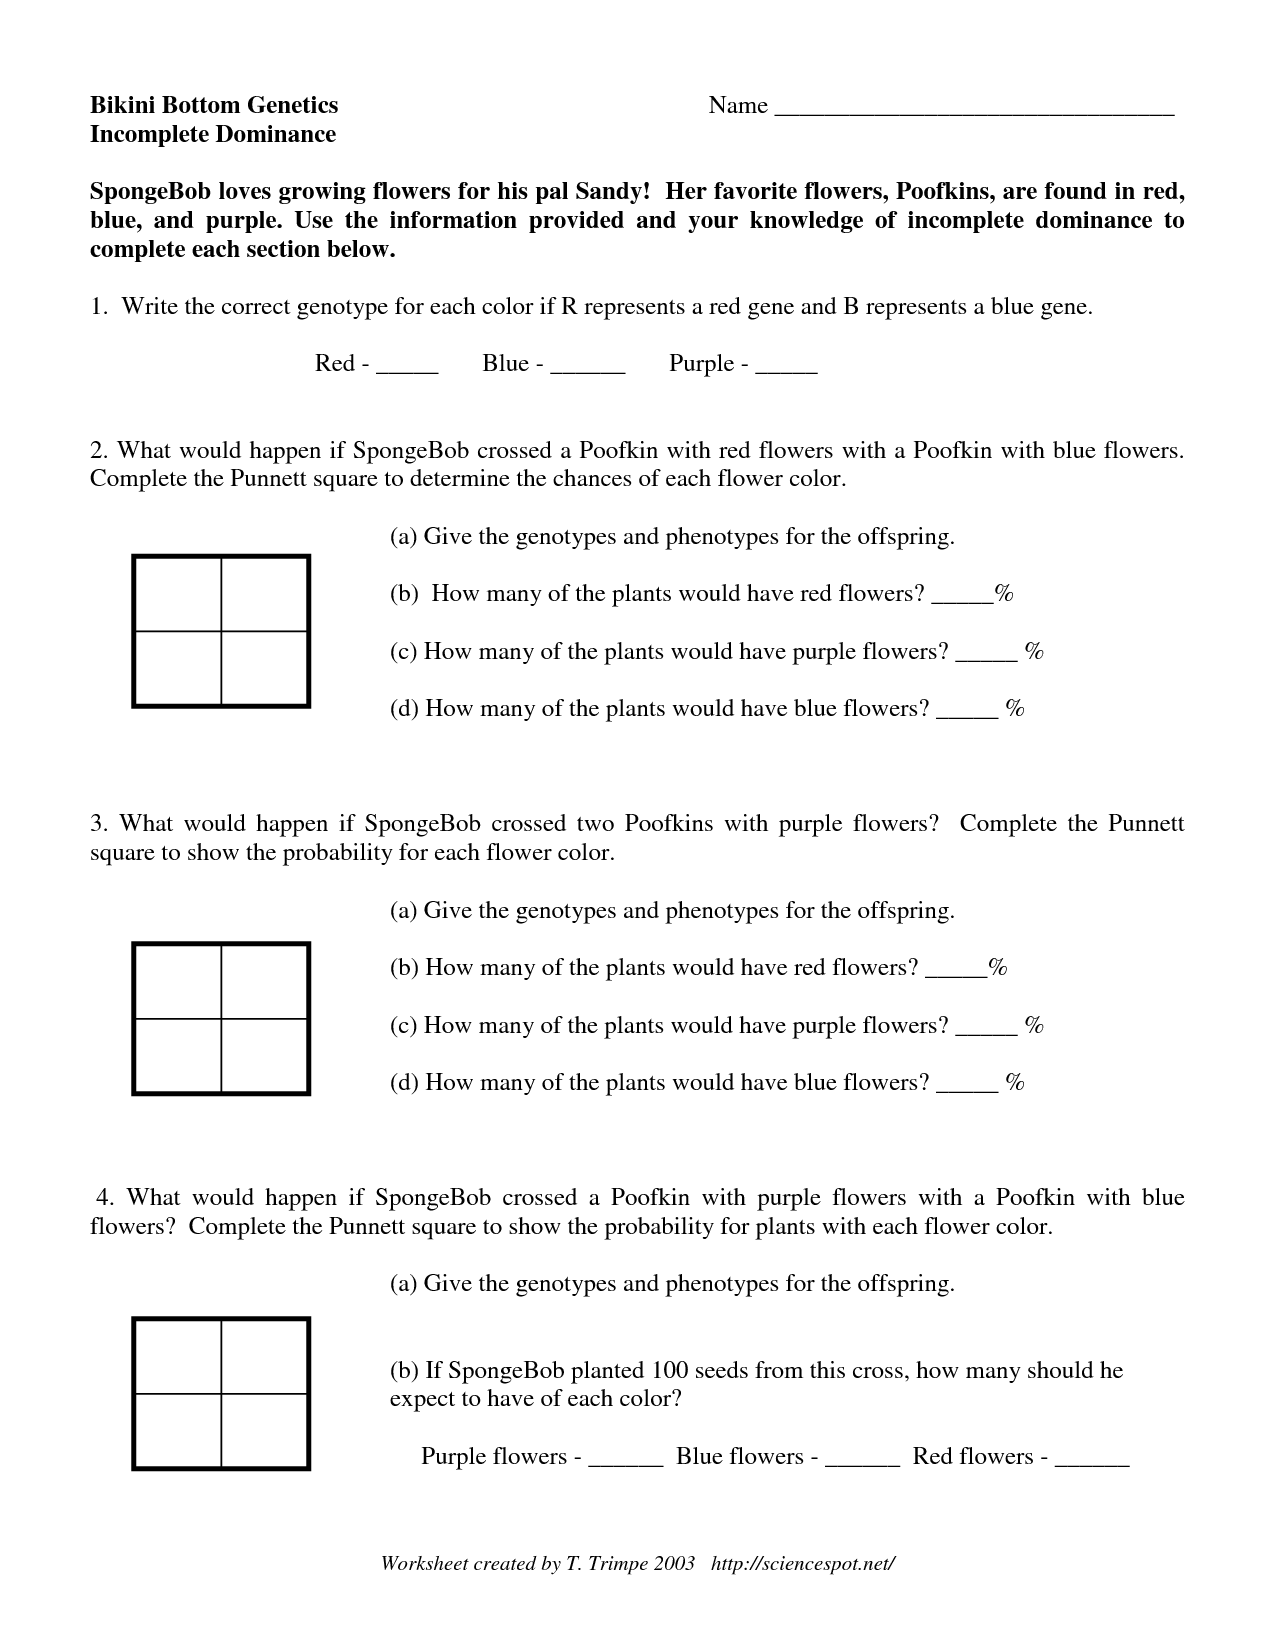 Oompa Loompa Genetics Worksheet Answers | Printable ...